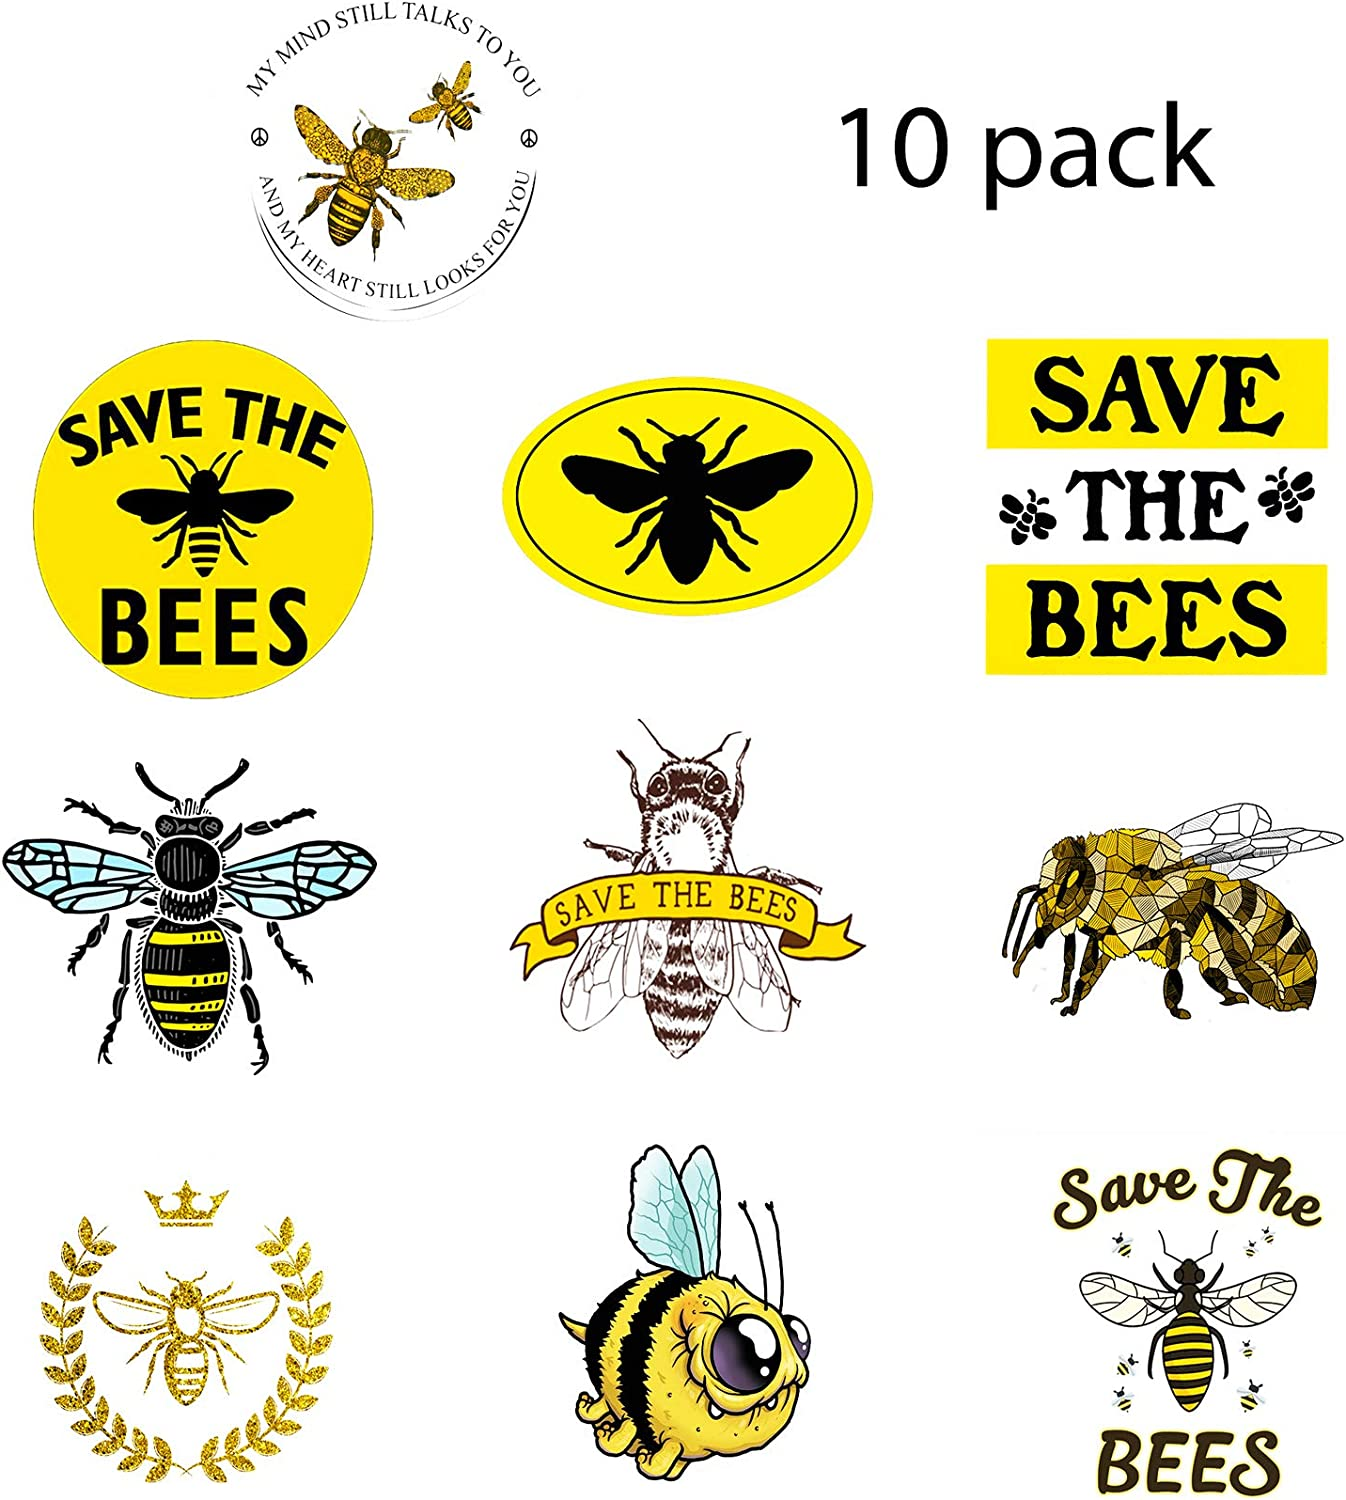 GTOTd Stickers for Save The Bees -10 Pcs Honey Bee Decal Vinyl Waterproof Stickers Skateboard Guitar Travel Case Sticker Door Laptop Luggage Car Bike Bicycle Helmet Stickers